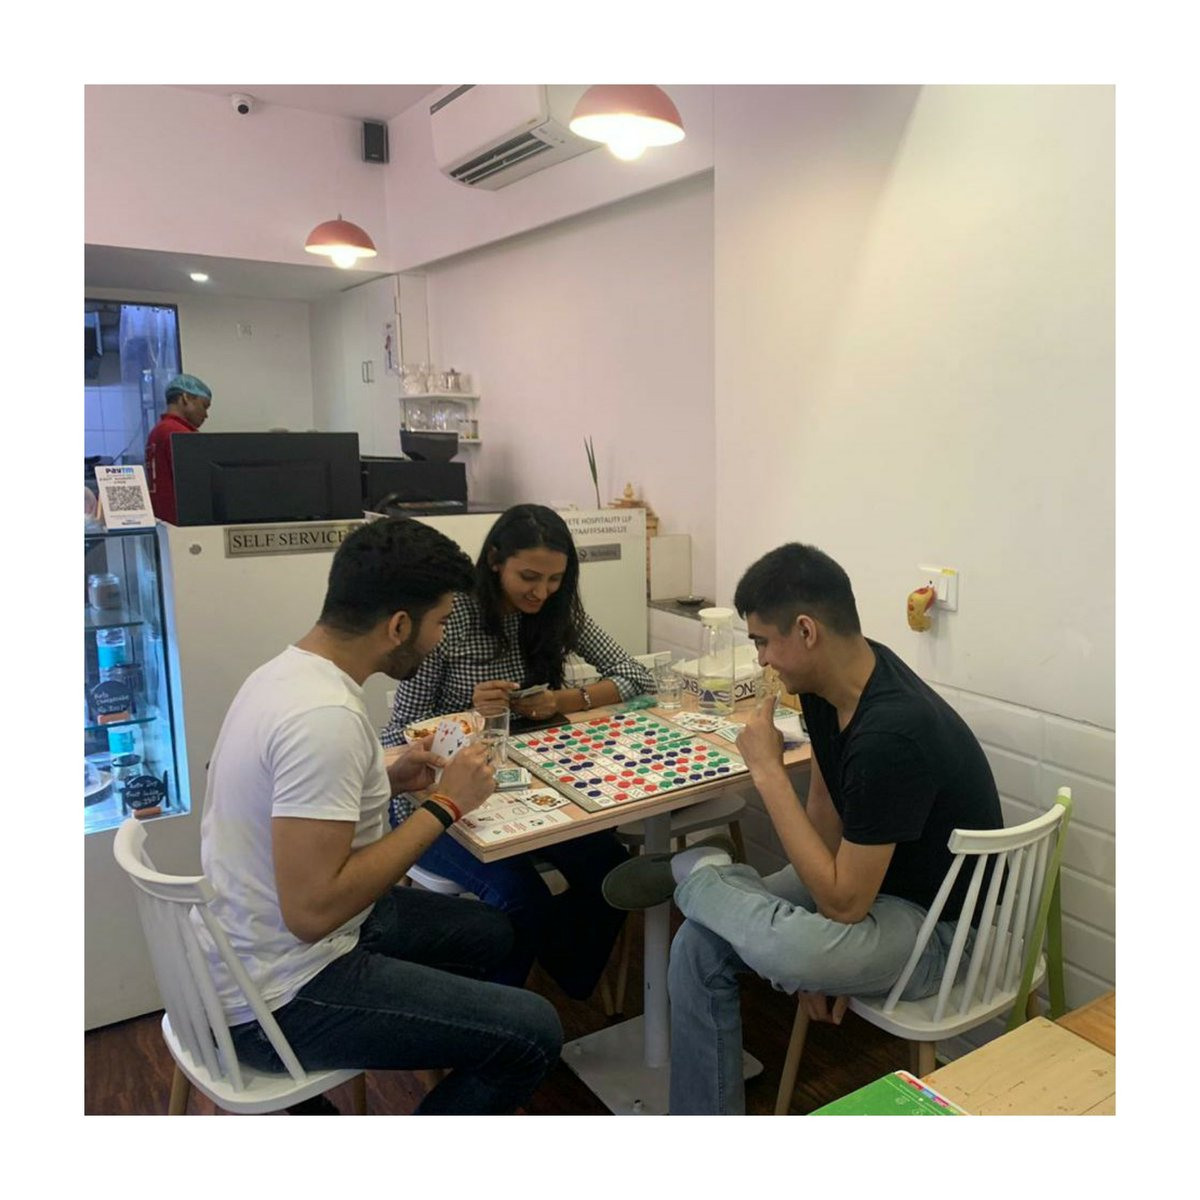 One of the favourite board games played @edengoodnesscafe  is Sequence! . Which is your favourite board game? . #boardgame  #sequence  #goodfood  #goodtime  #cleaneating  #mumbaicafes  #oshiwara  #lokhandwala  #eatgoodlivegood